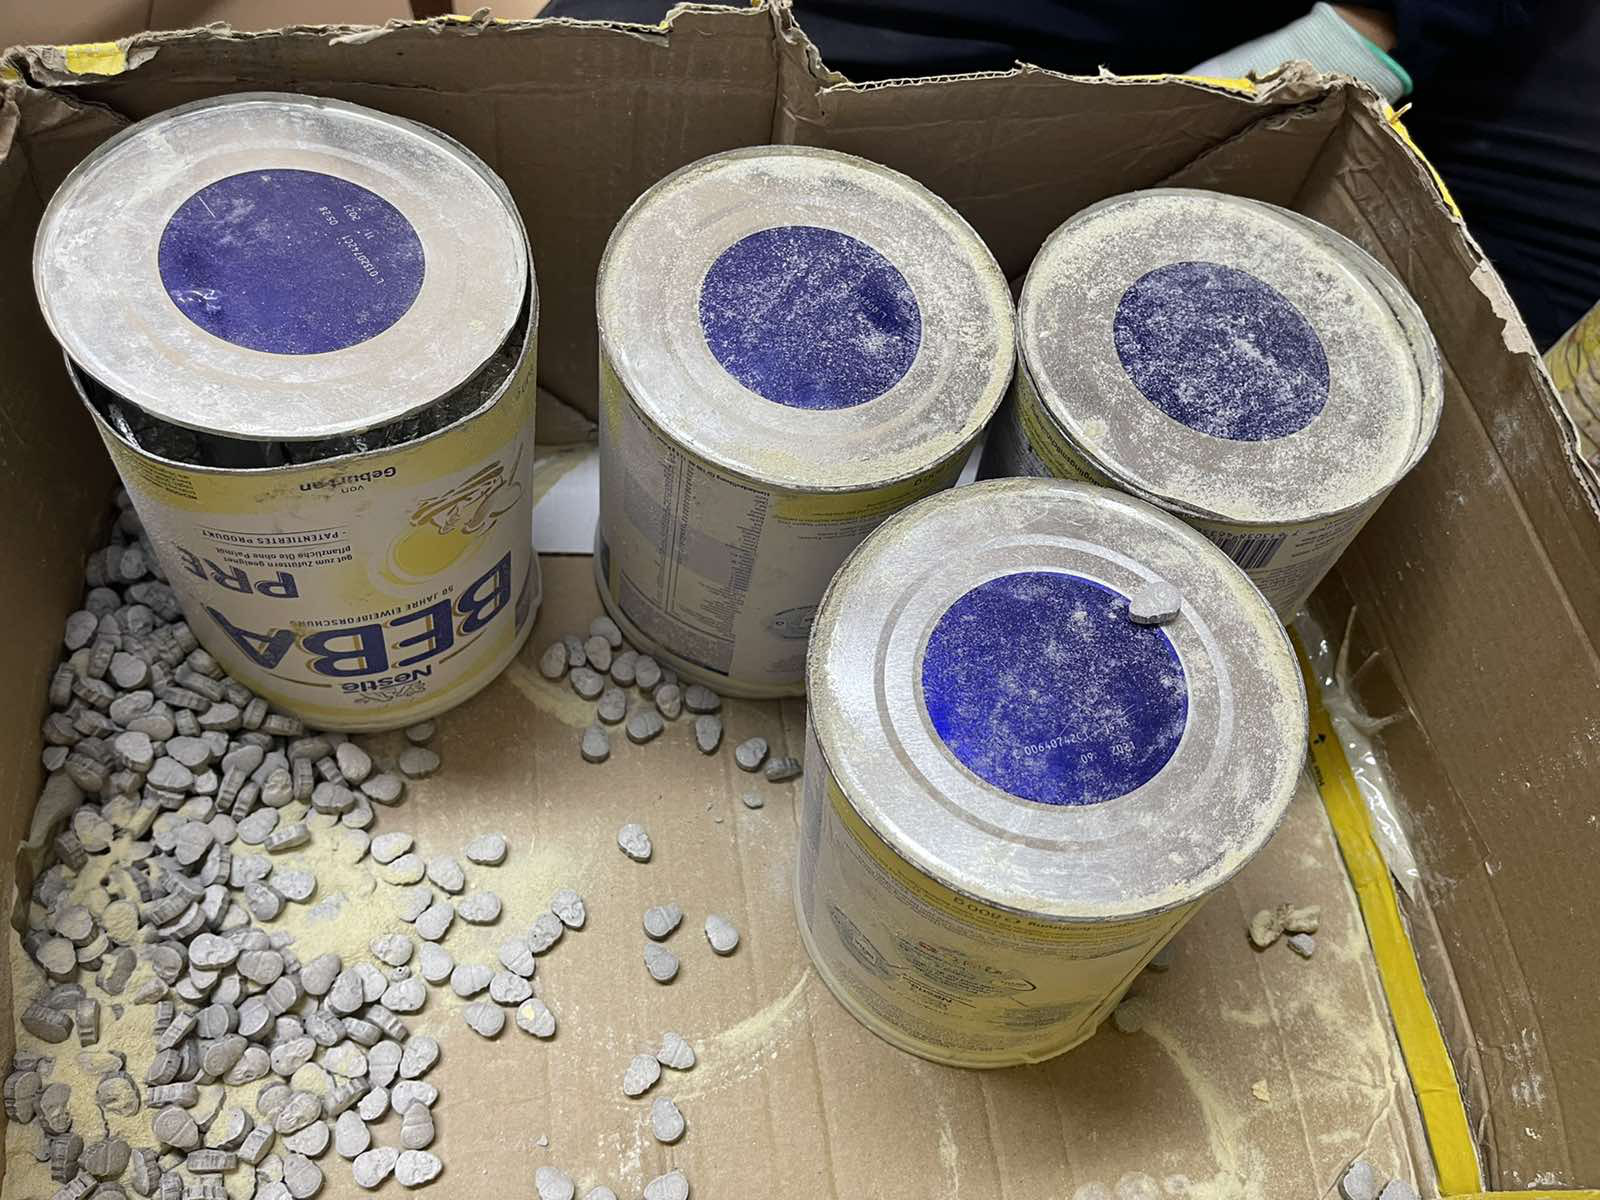 36kg of drugs found in imported canned products in Ho Chi Minh City